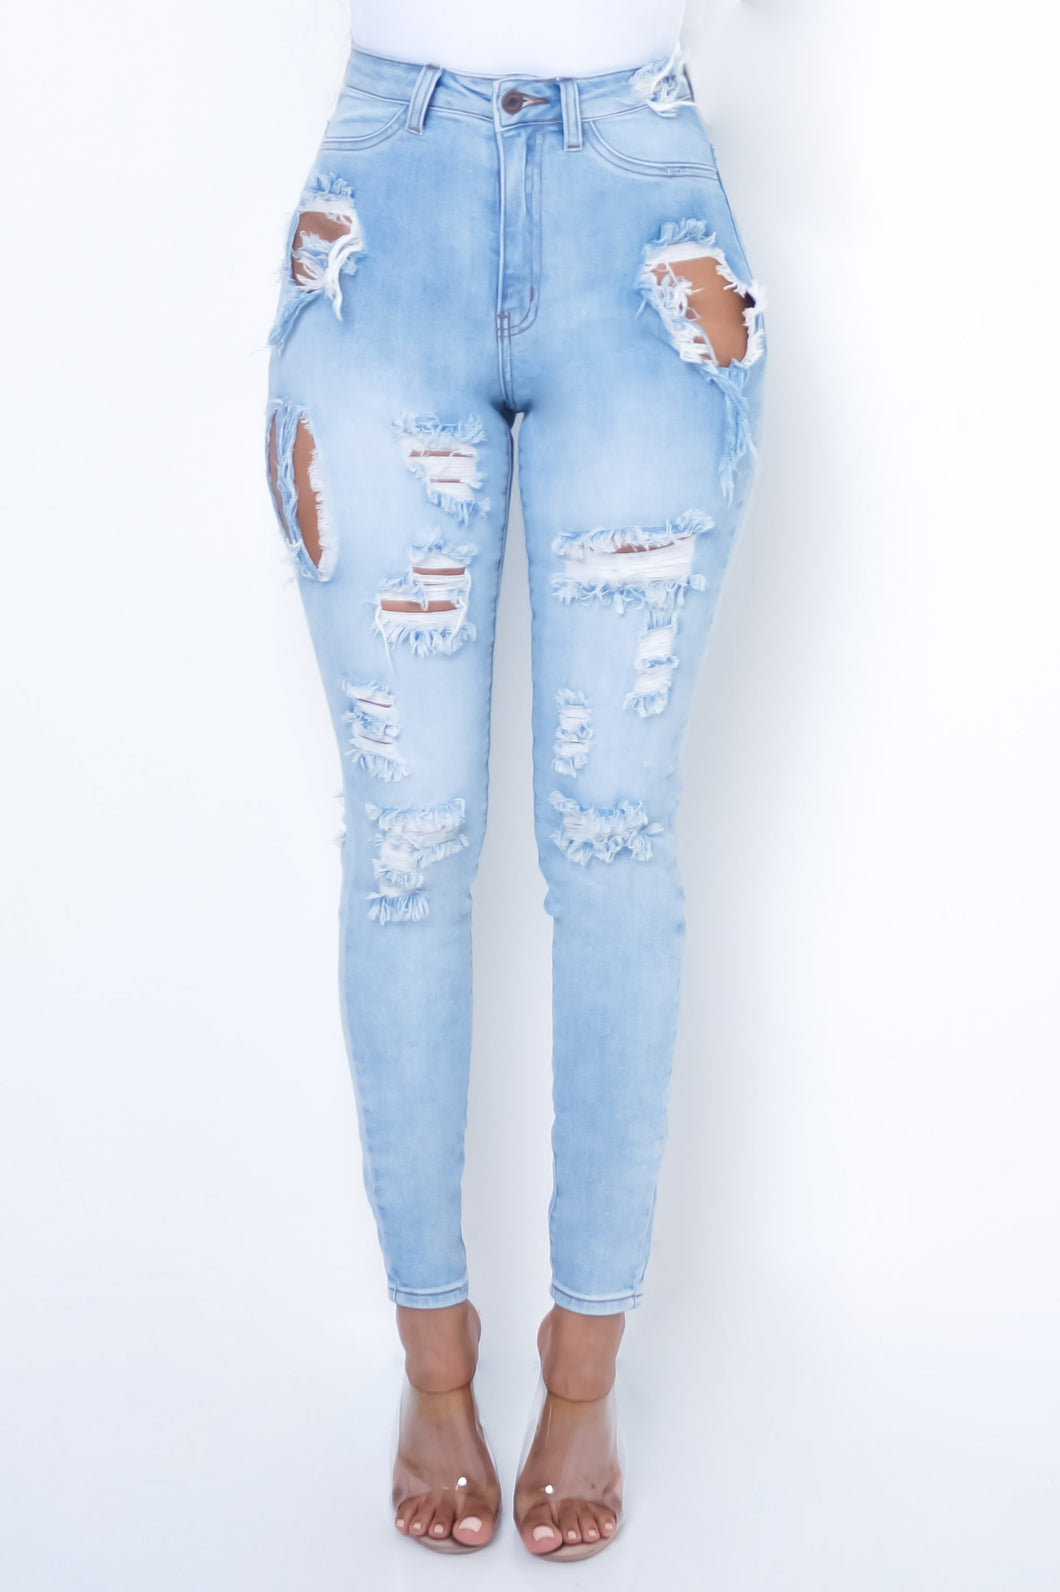 Countdown Jeans - Light Blue